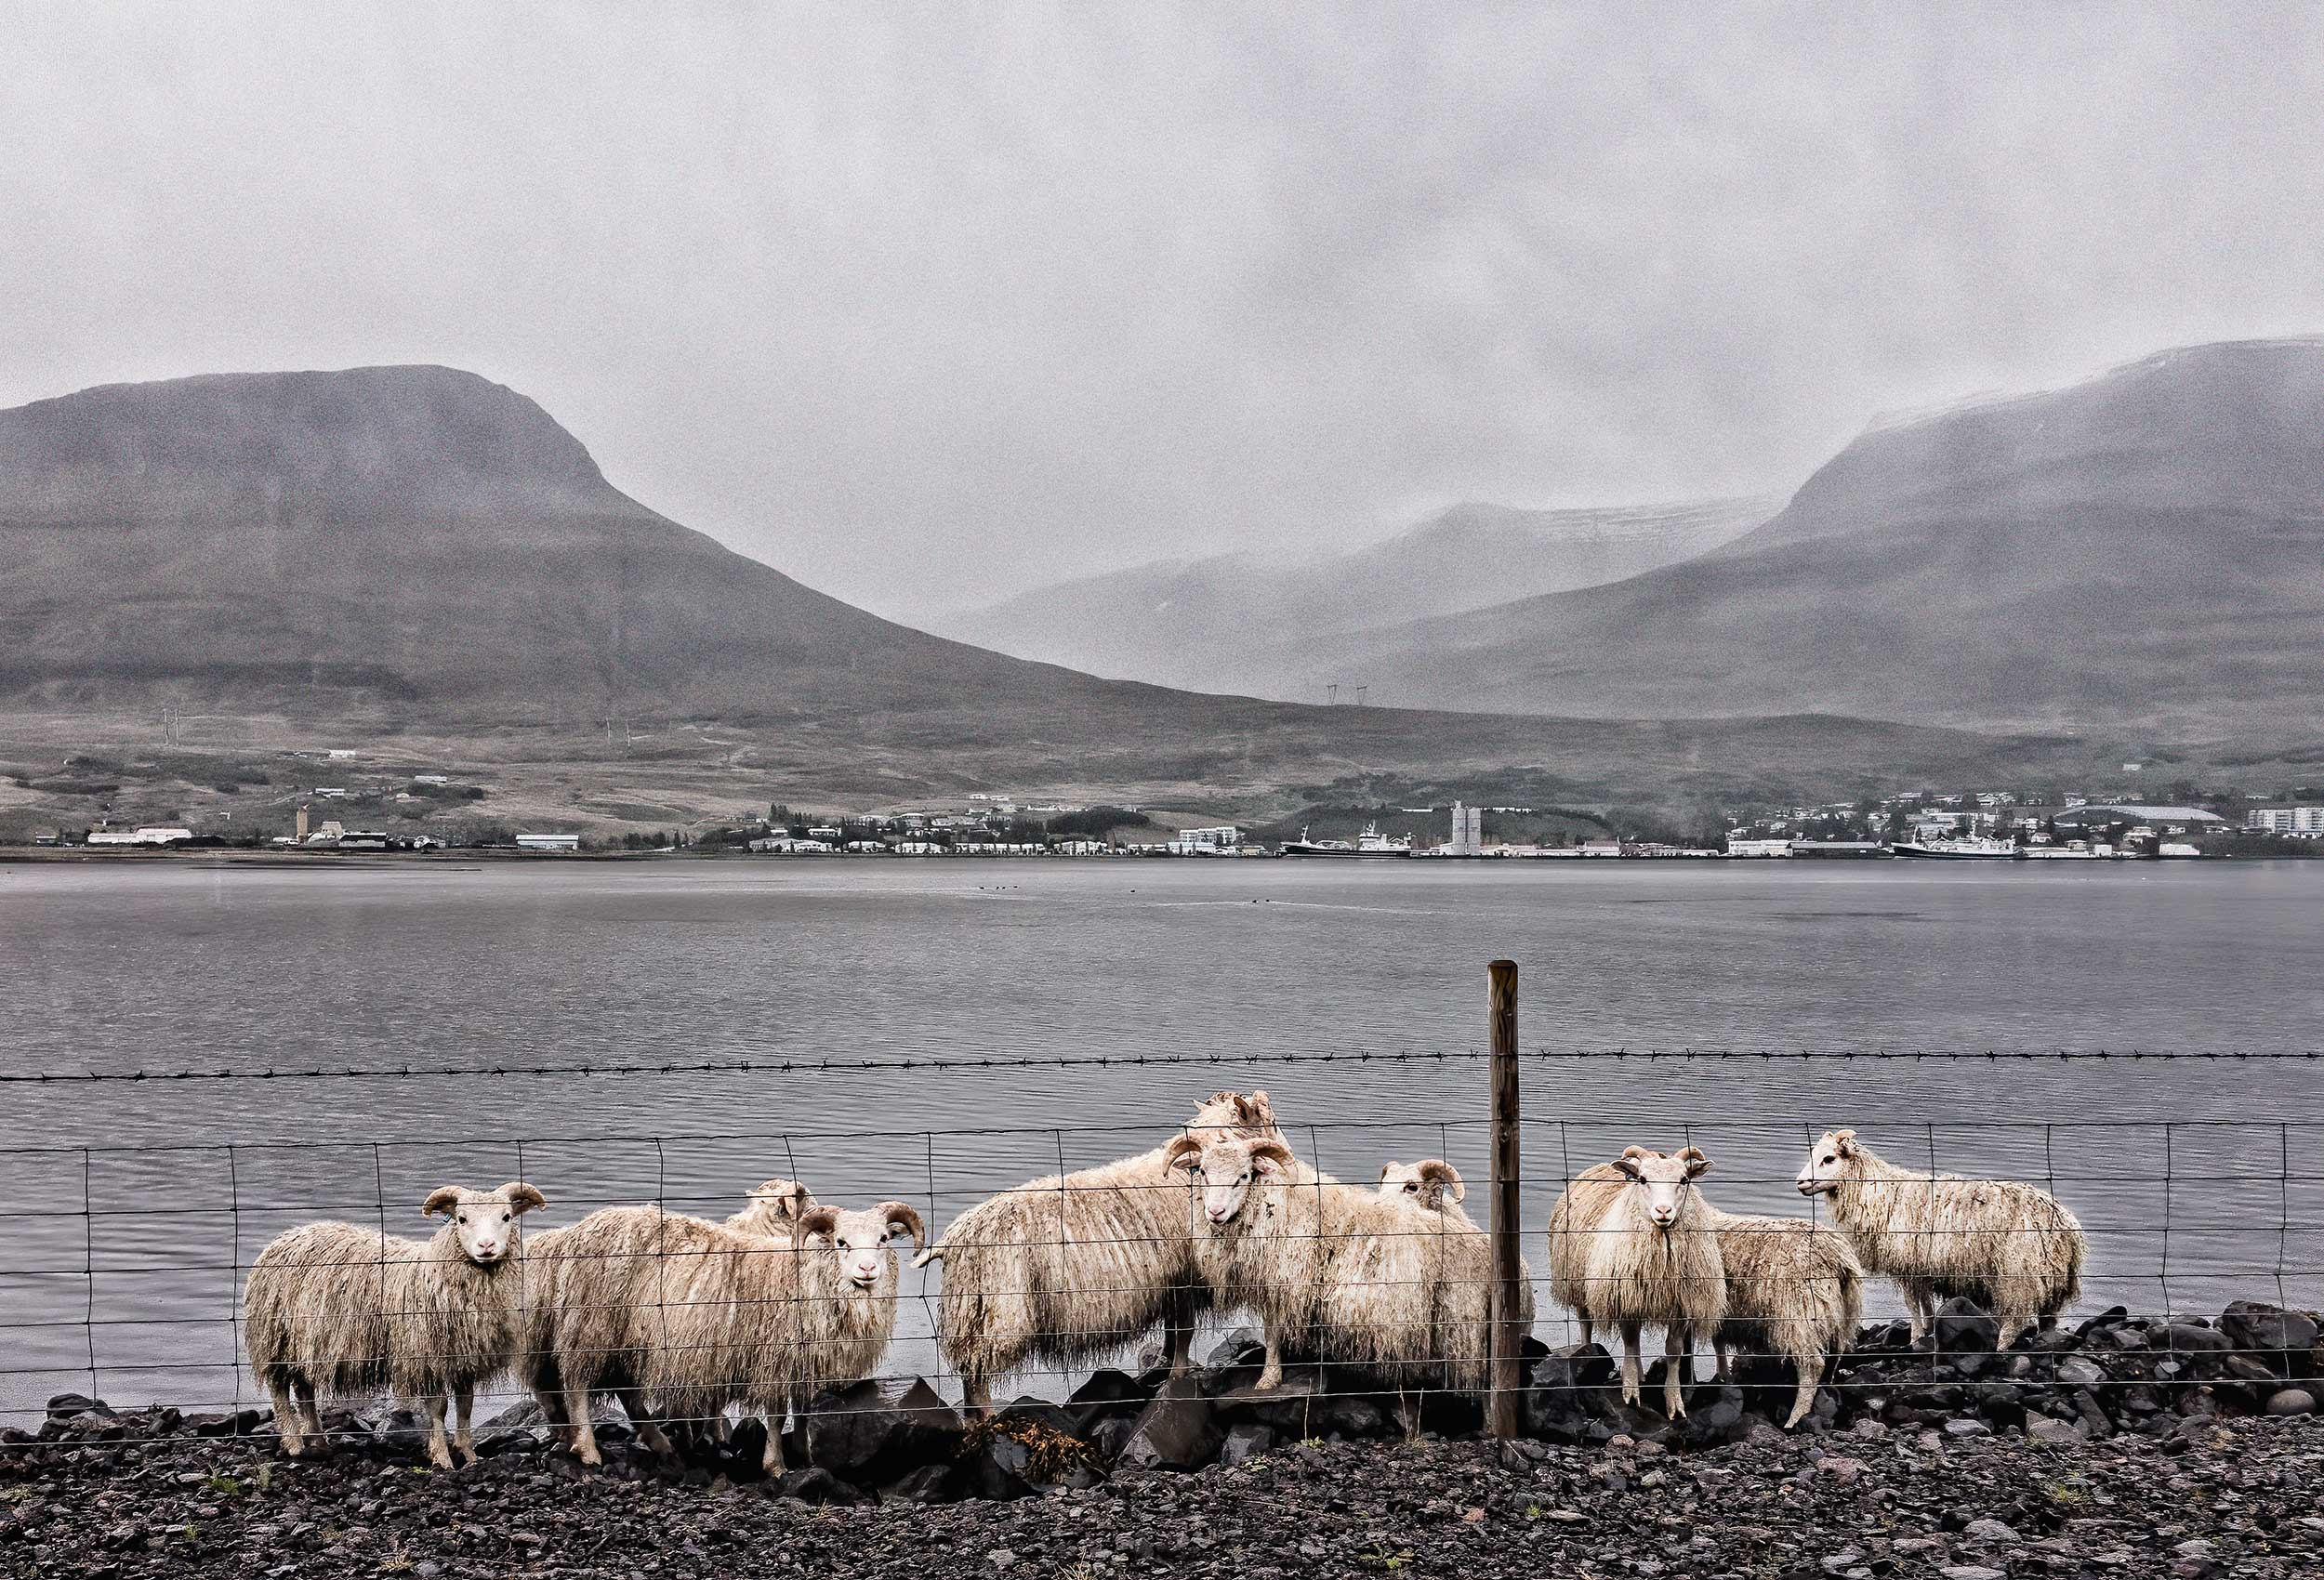 a-group-of-iceland-sheep-are-trapped-behind-a-fence-next-to-an-inlet-in-a-small-icelandic-town